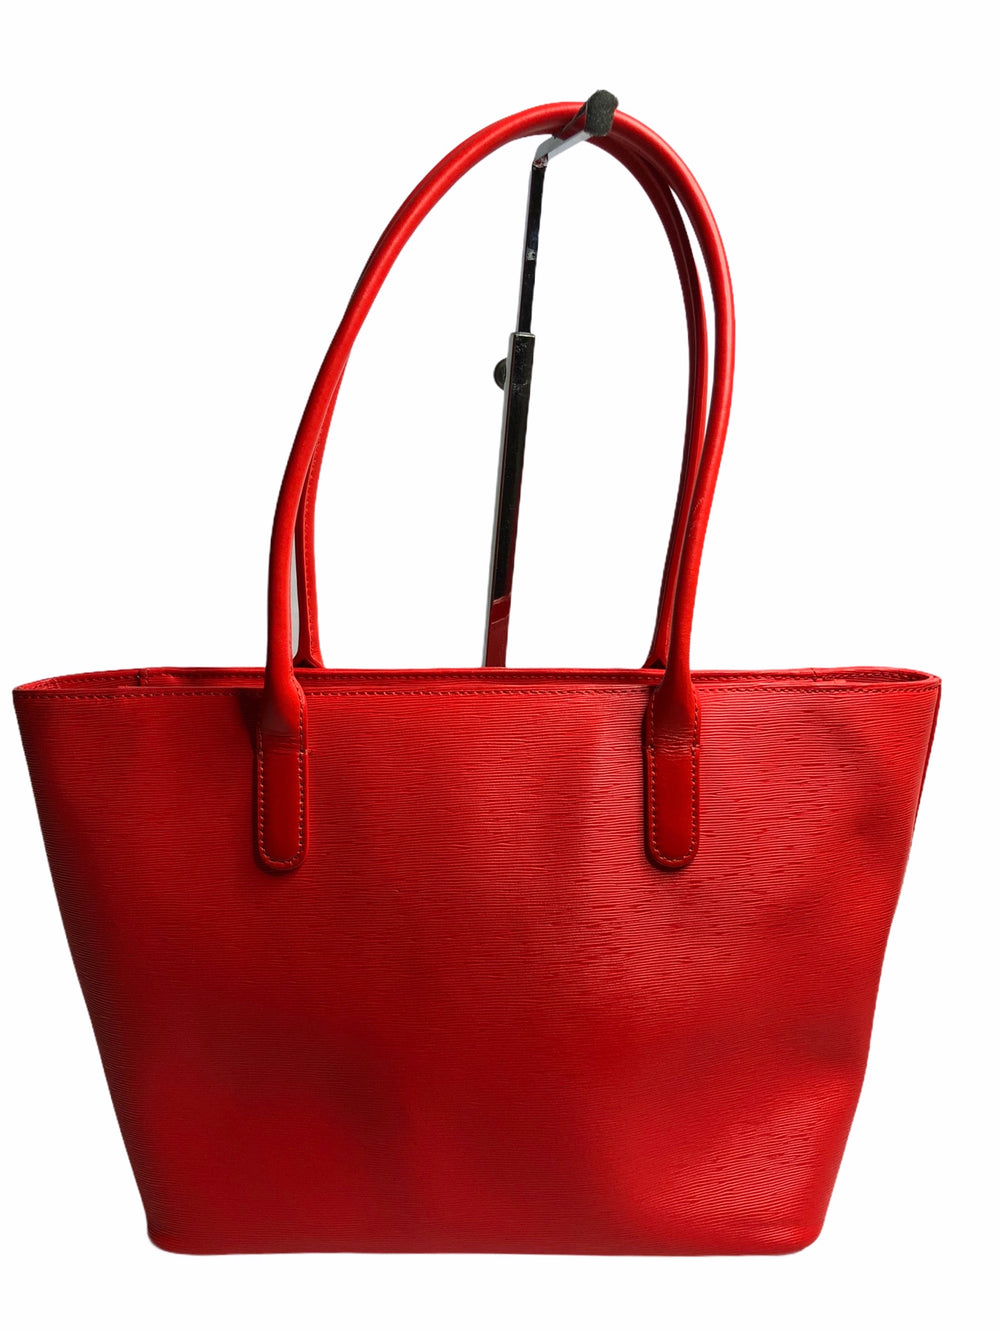 Ted Baker Red Leather Tote - As Seen on Instagram